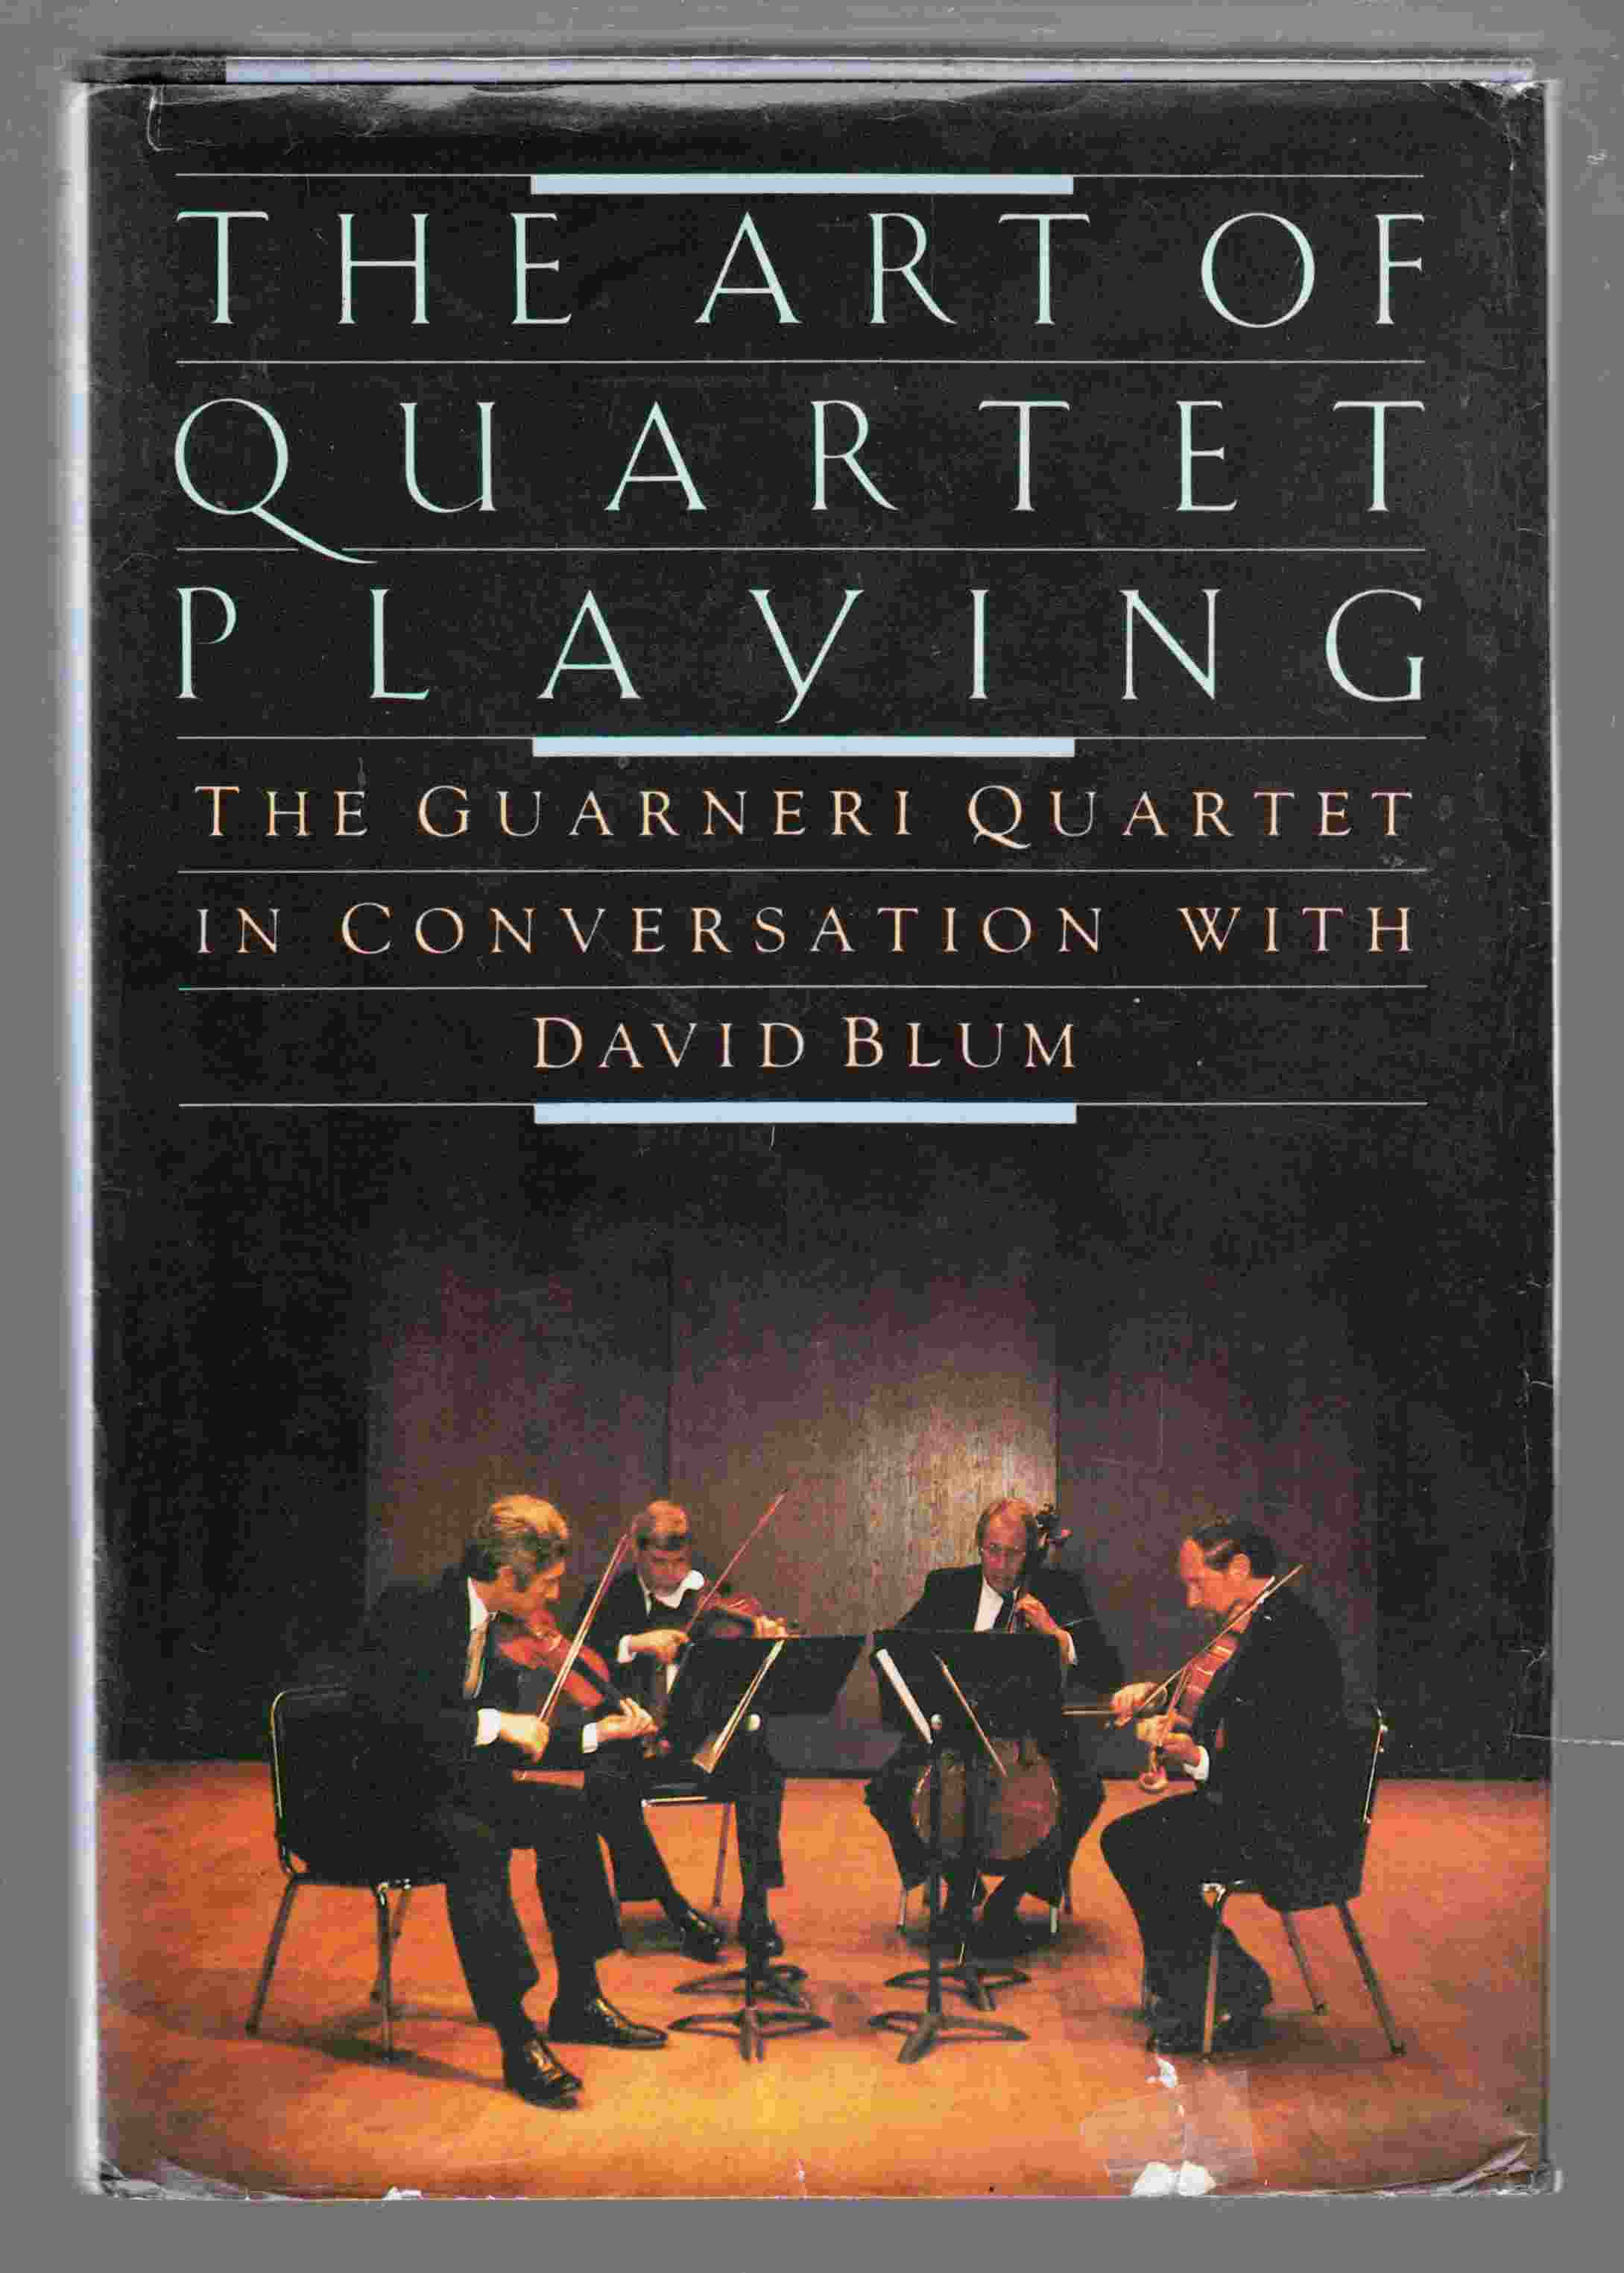 Image for The Art of Quartet Playing The Guarneri Quartet in Conversation with David Blum